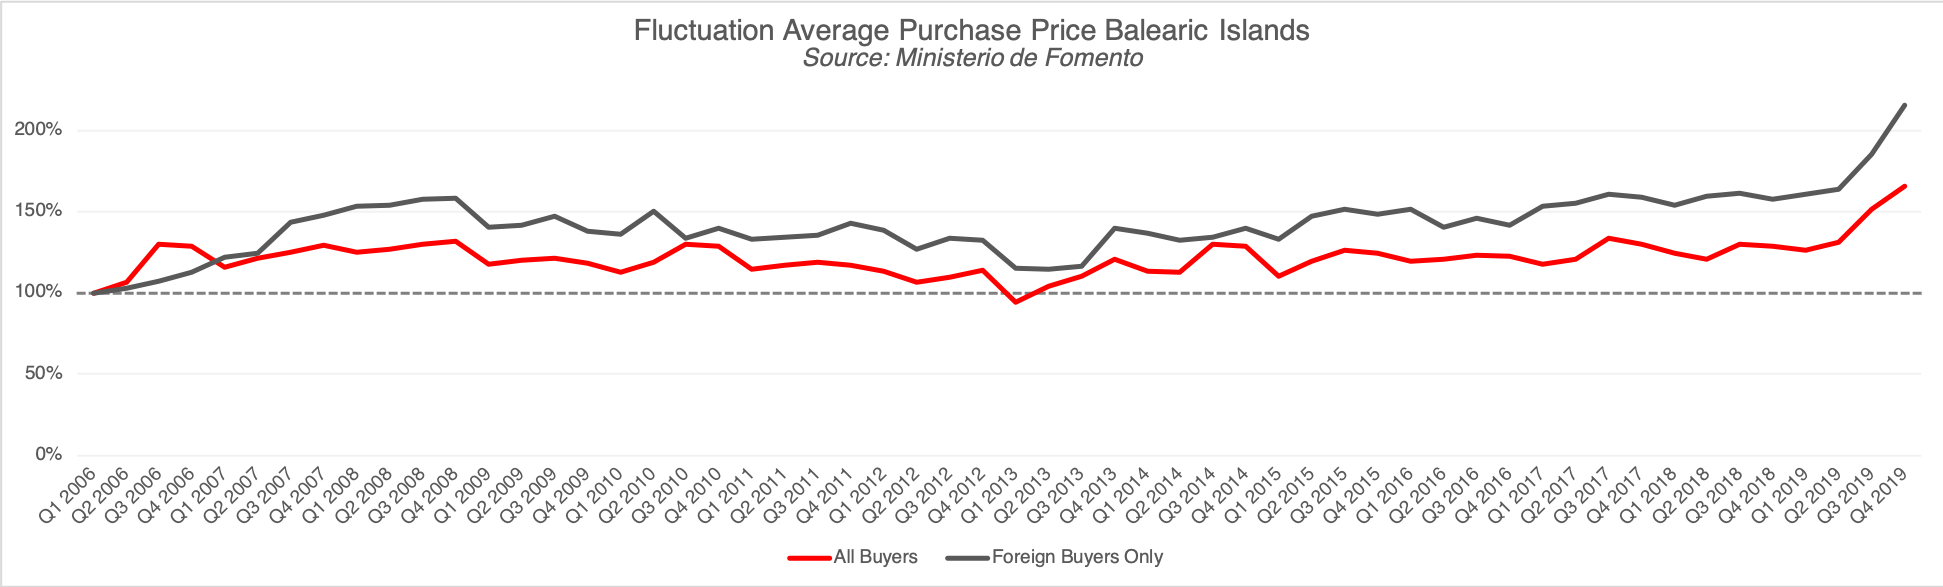 Fluctuation Average Purchase Price Balearic Islands